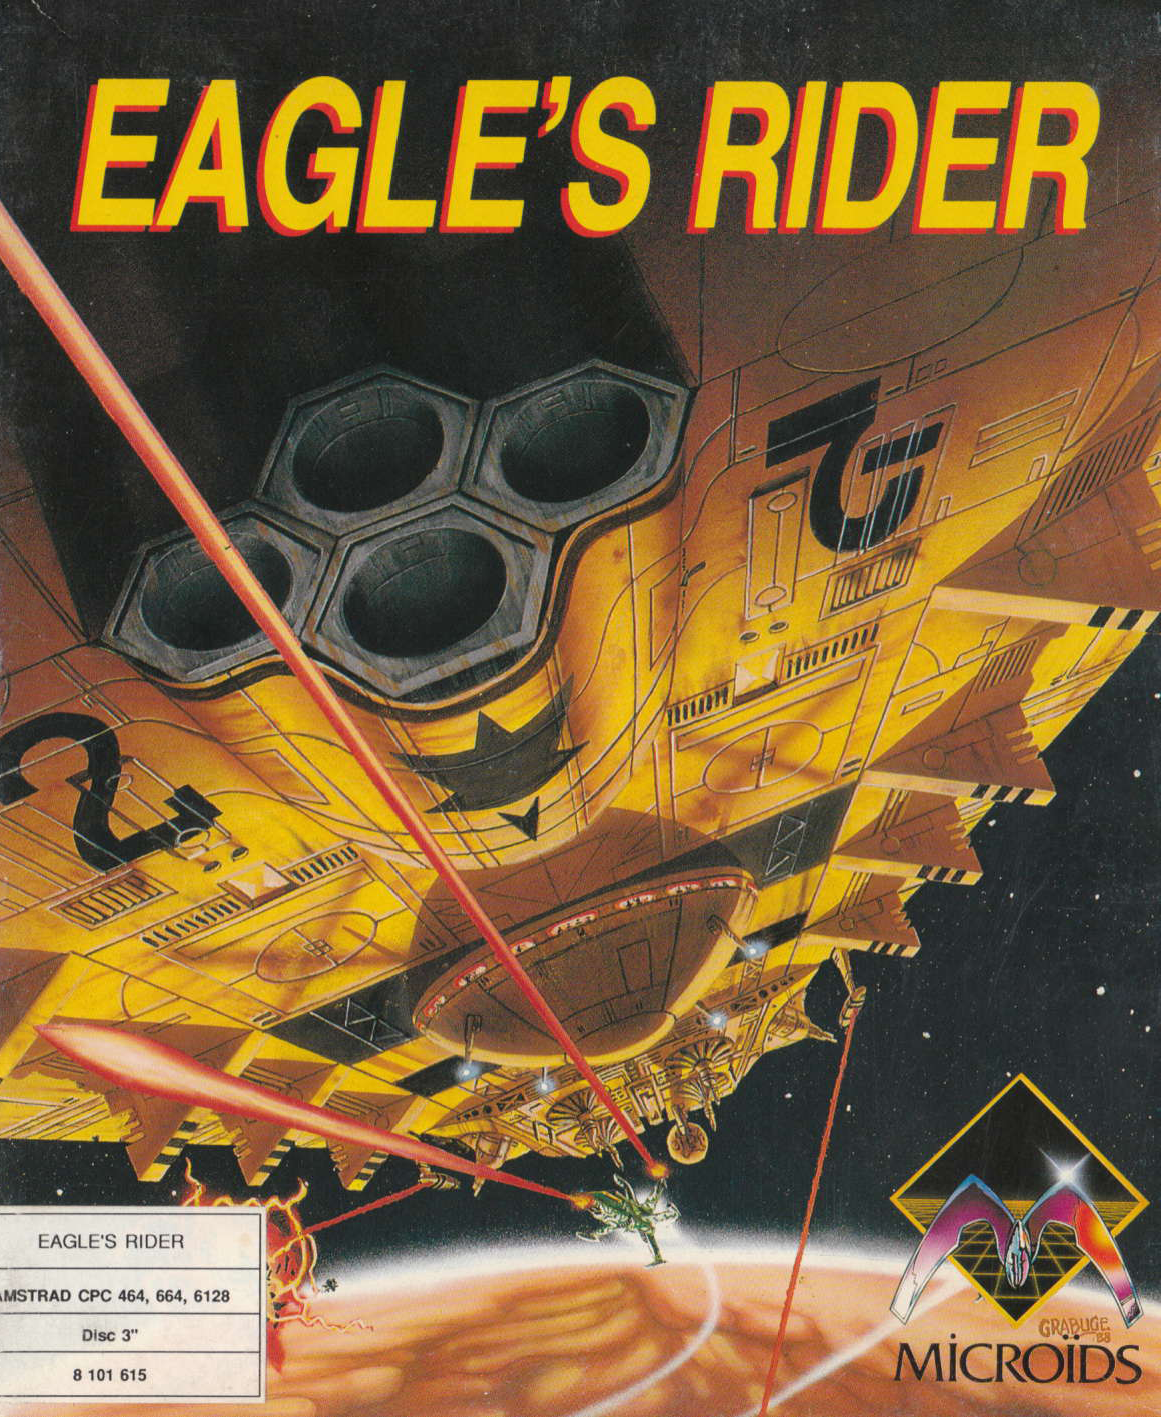 cover of the Amstrad CPC game Eagle's Rider  by GameBase CPC